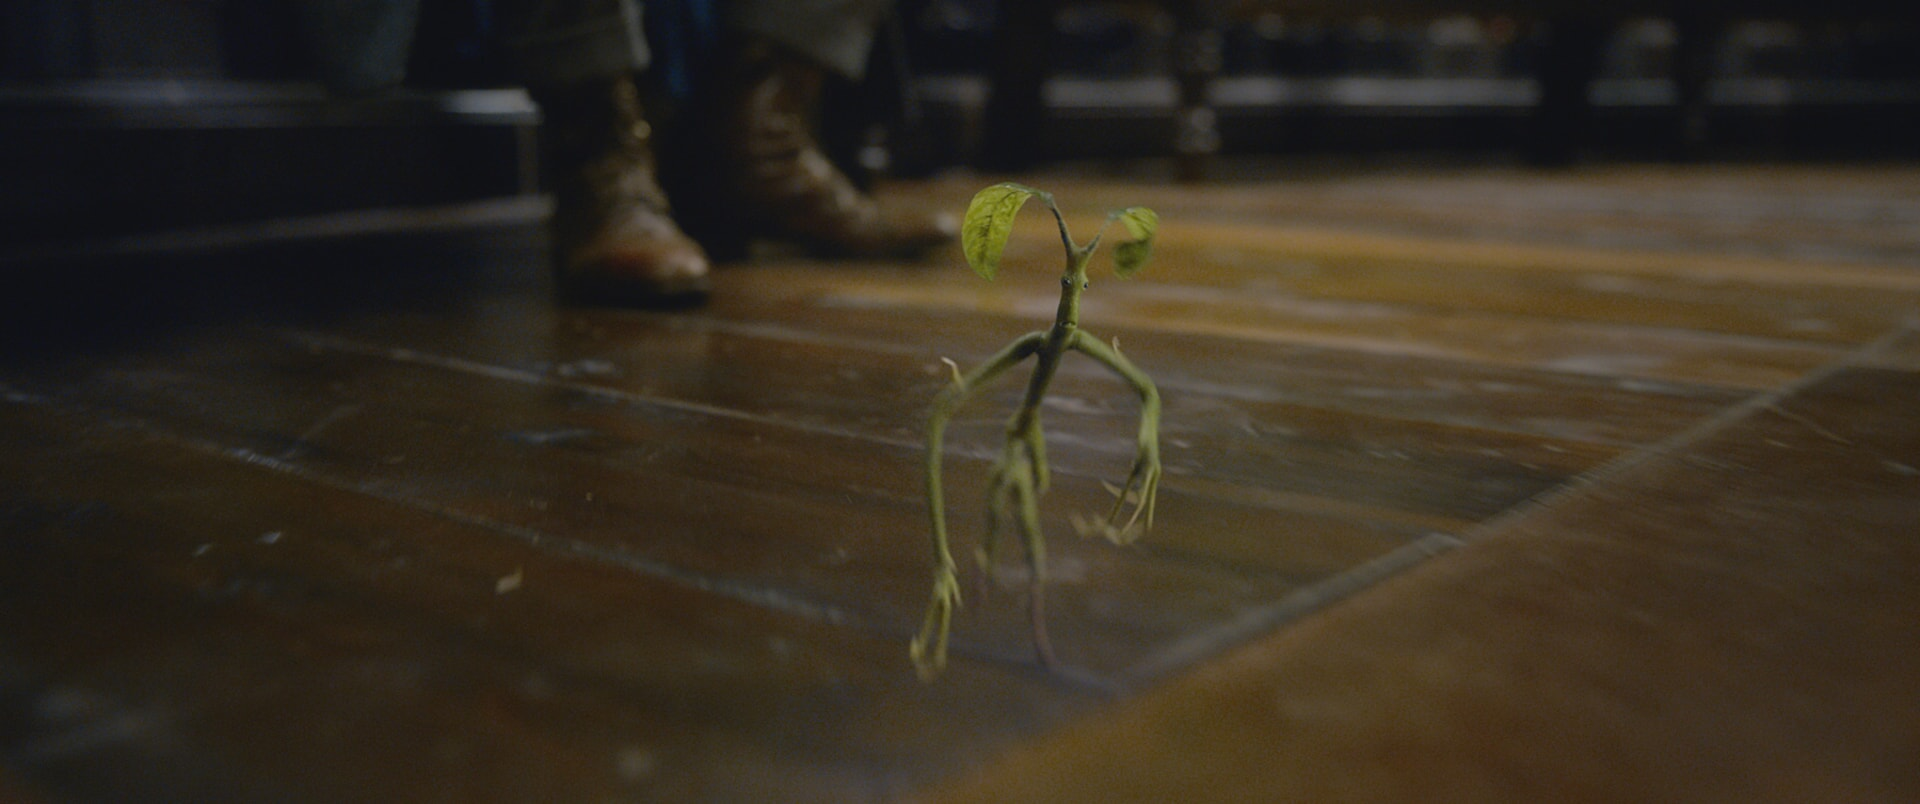 "The bowtruckle PICKETT in a scene from Warner Bros. Pictures' fantasy adventure ""FANTASTIC BEASTS: THE CRIMES OF GRINDELWALD,"" a Warner Bros. Pictures release."